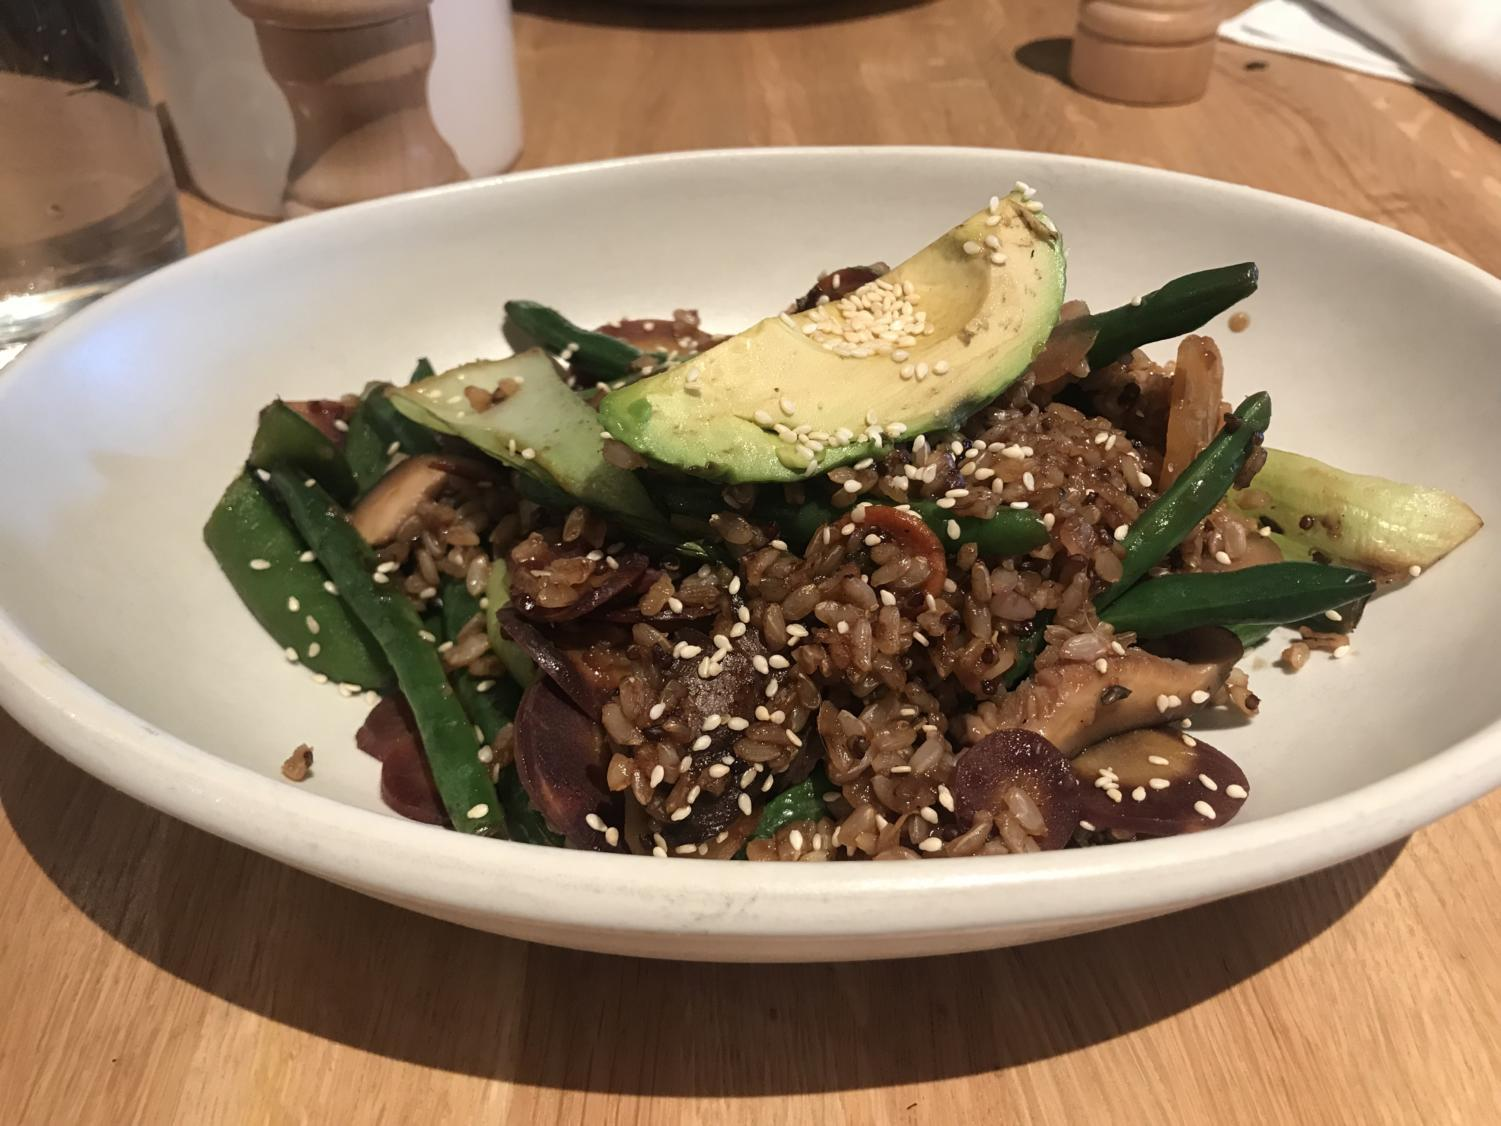 The small Teriyaki Quinoa bowl was loaded with flavor but not enough rice.